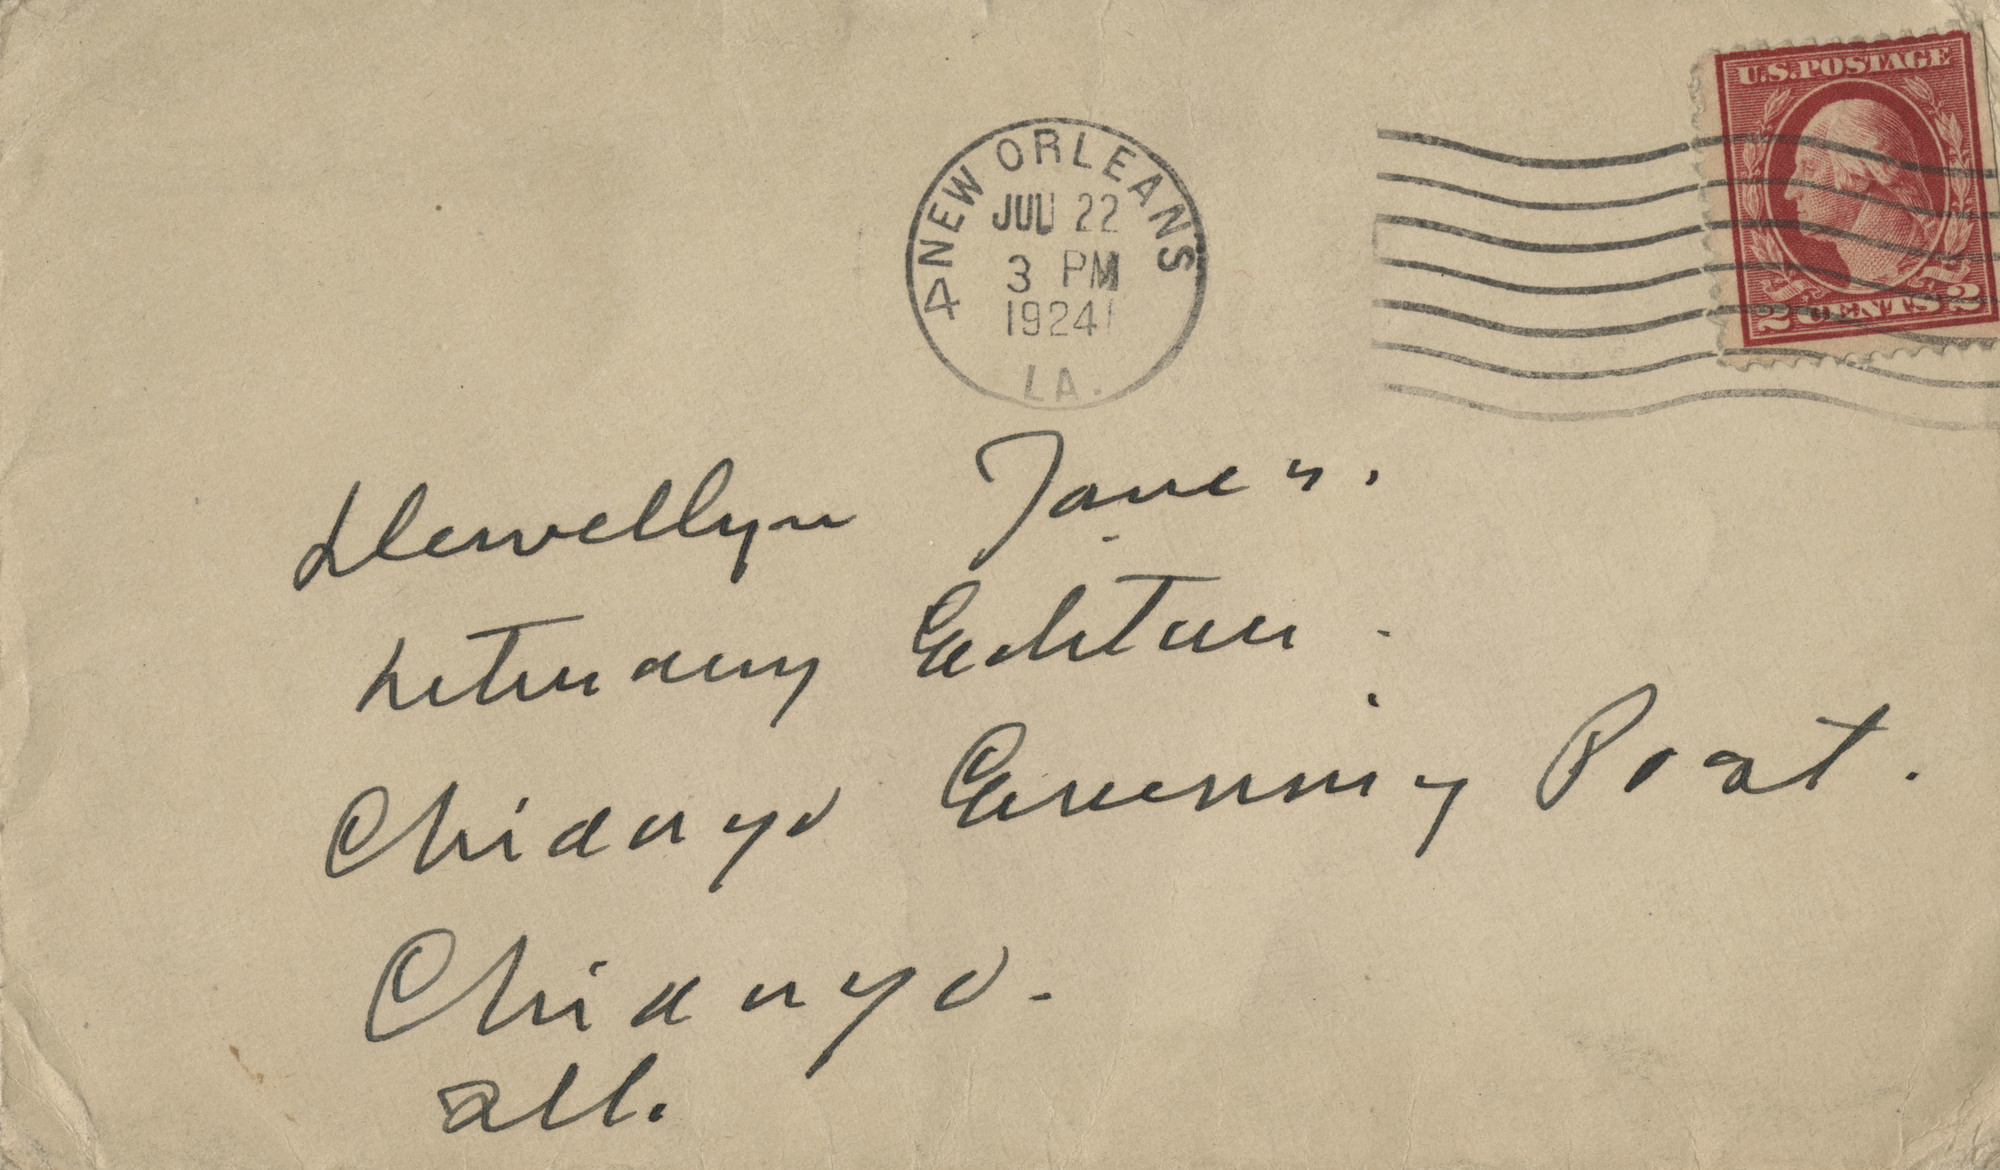 Ms2015-044_AndersonSherwood_Letter_1924_0722env.jpg